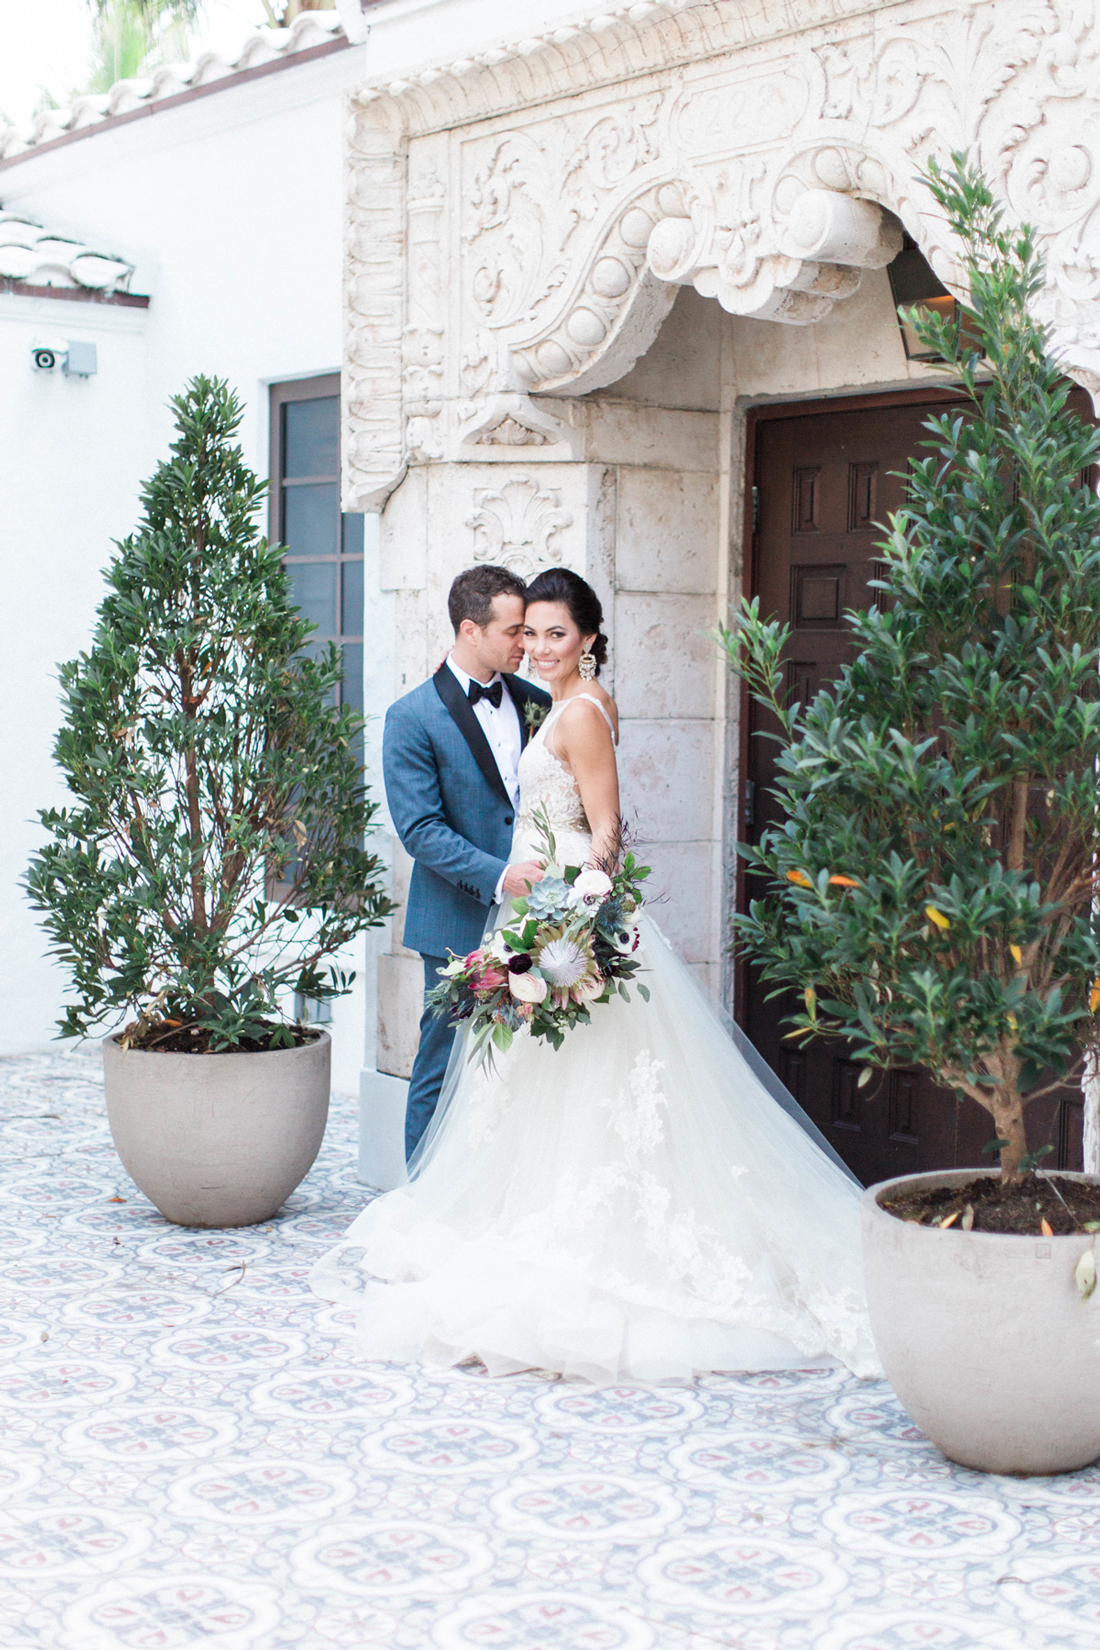 A Stylish, Bohemian Garden Wedding in Miami Beach